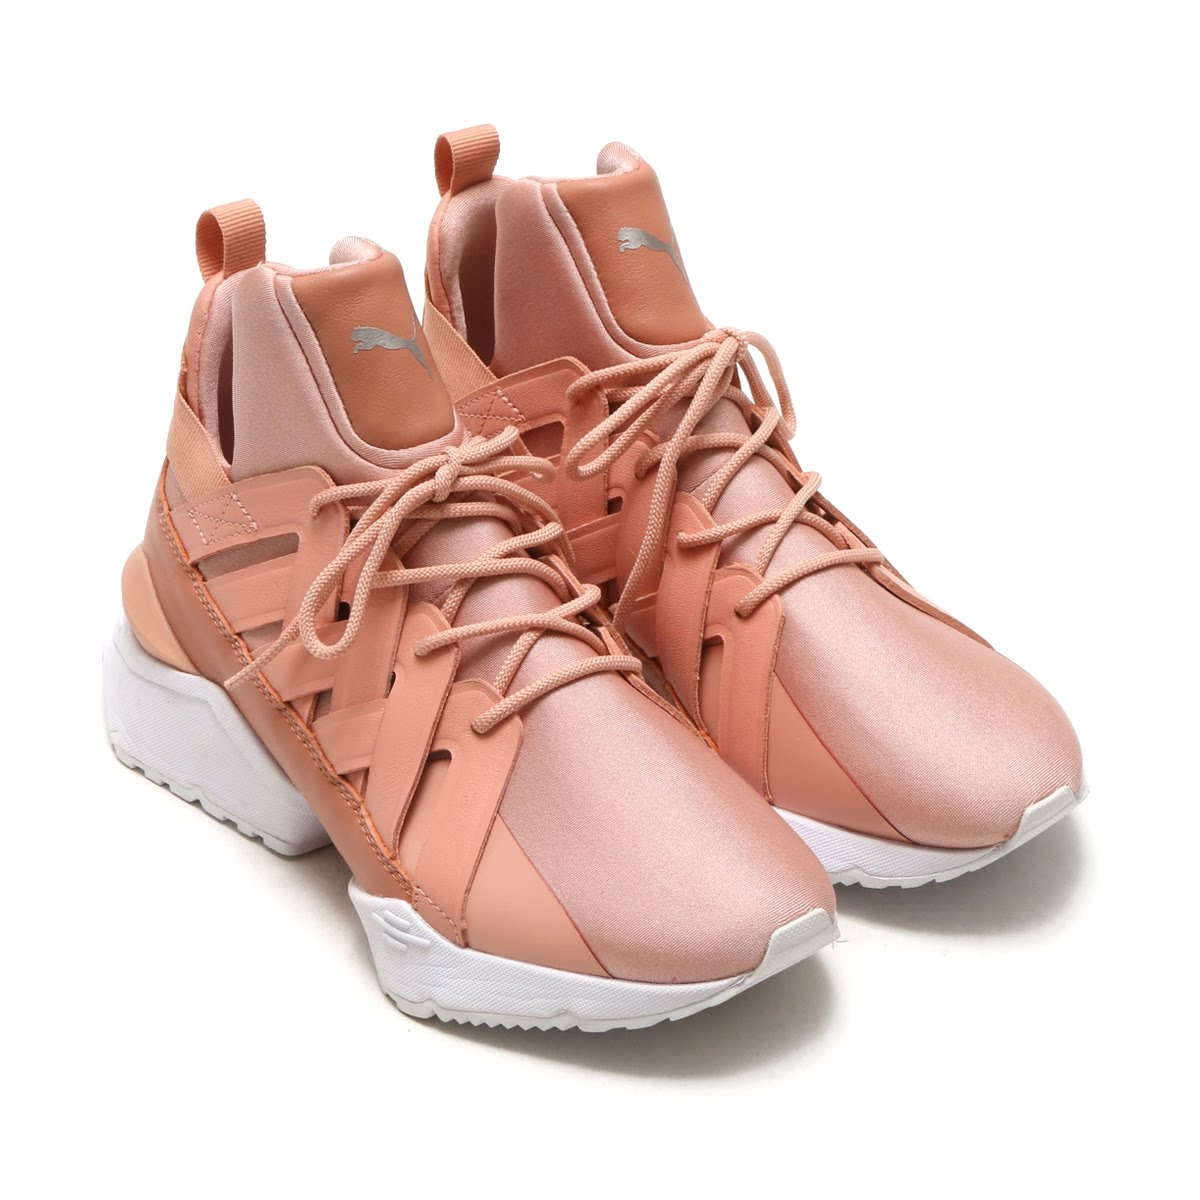 2d792612b Puma Muses echo satin EP women are sneakers of the women size who got  inspiration from elegance and the blessing of the dancer of the new York  City ballet.